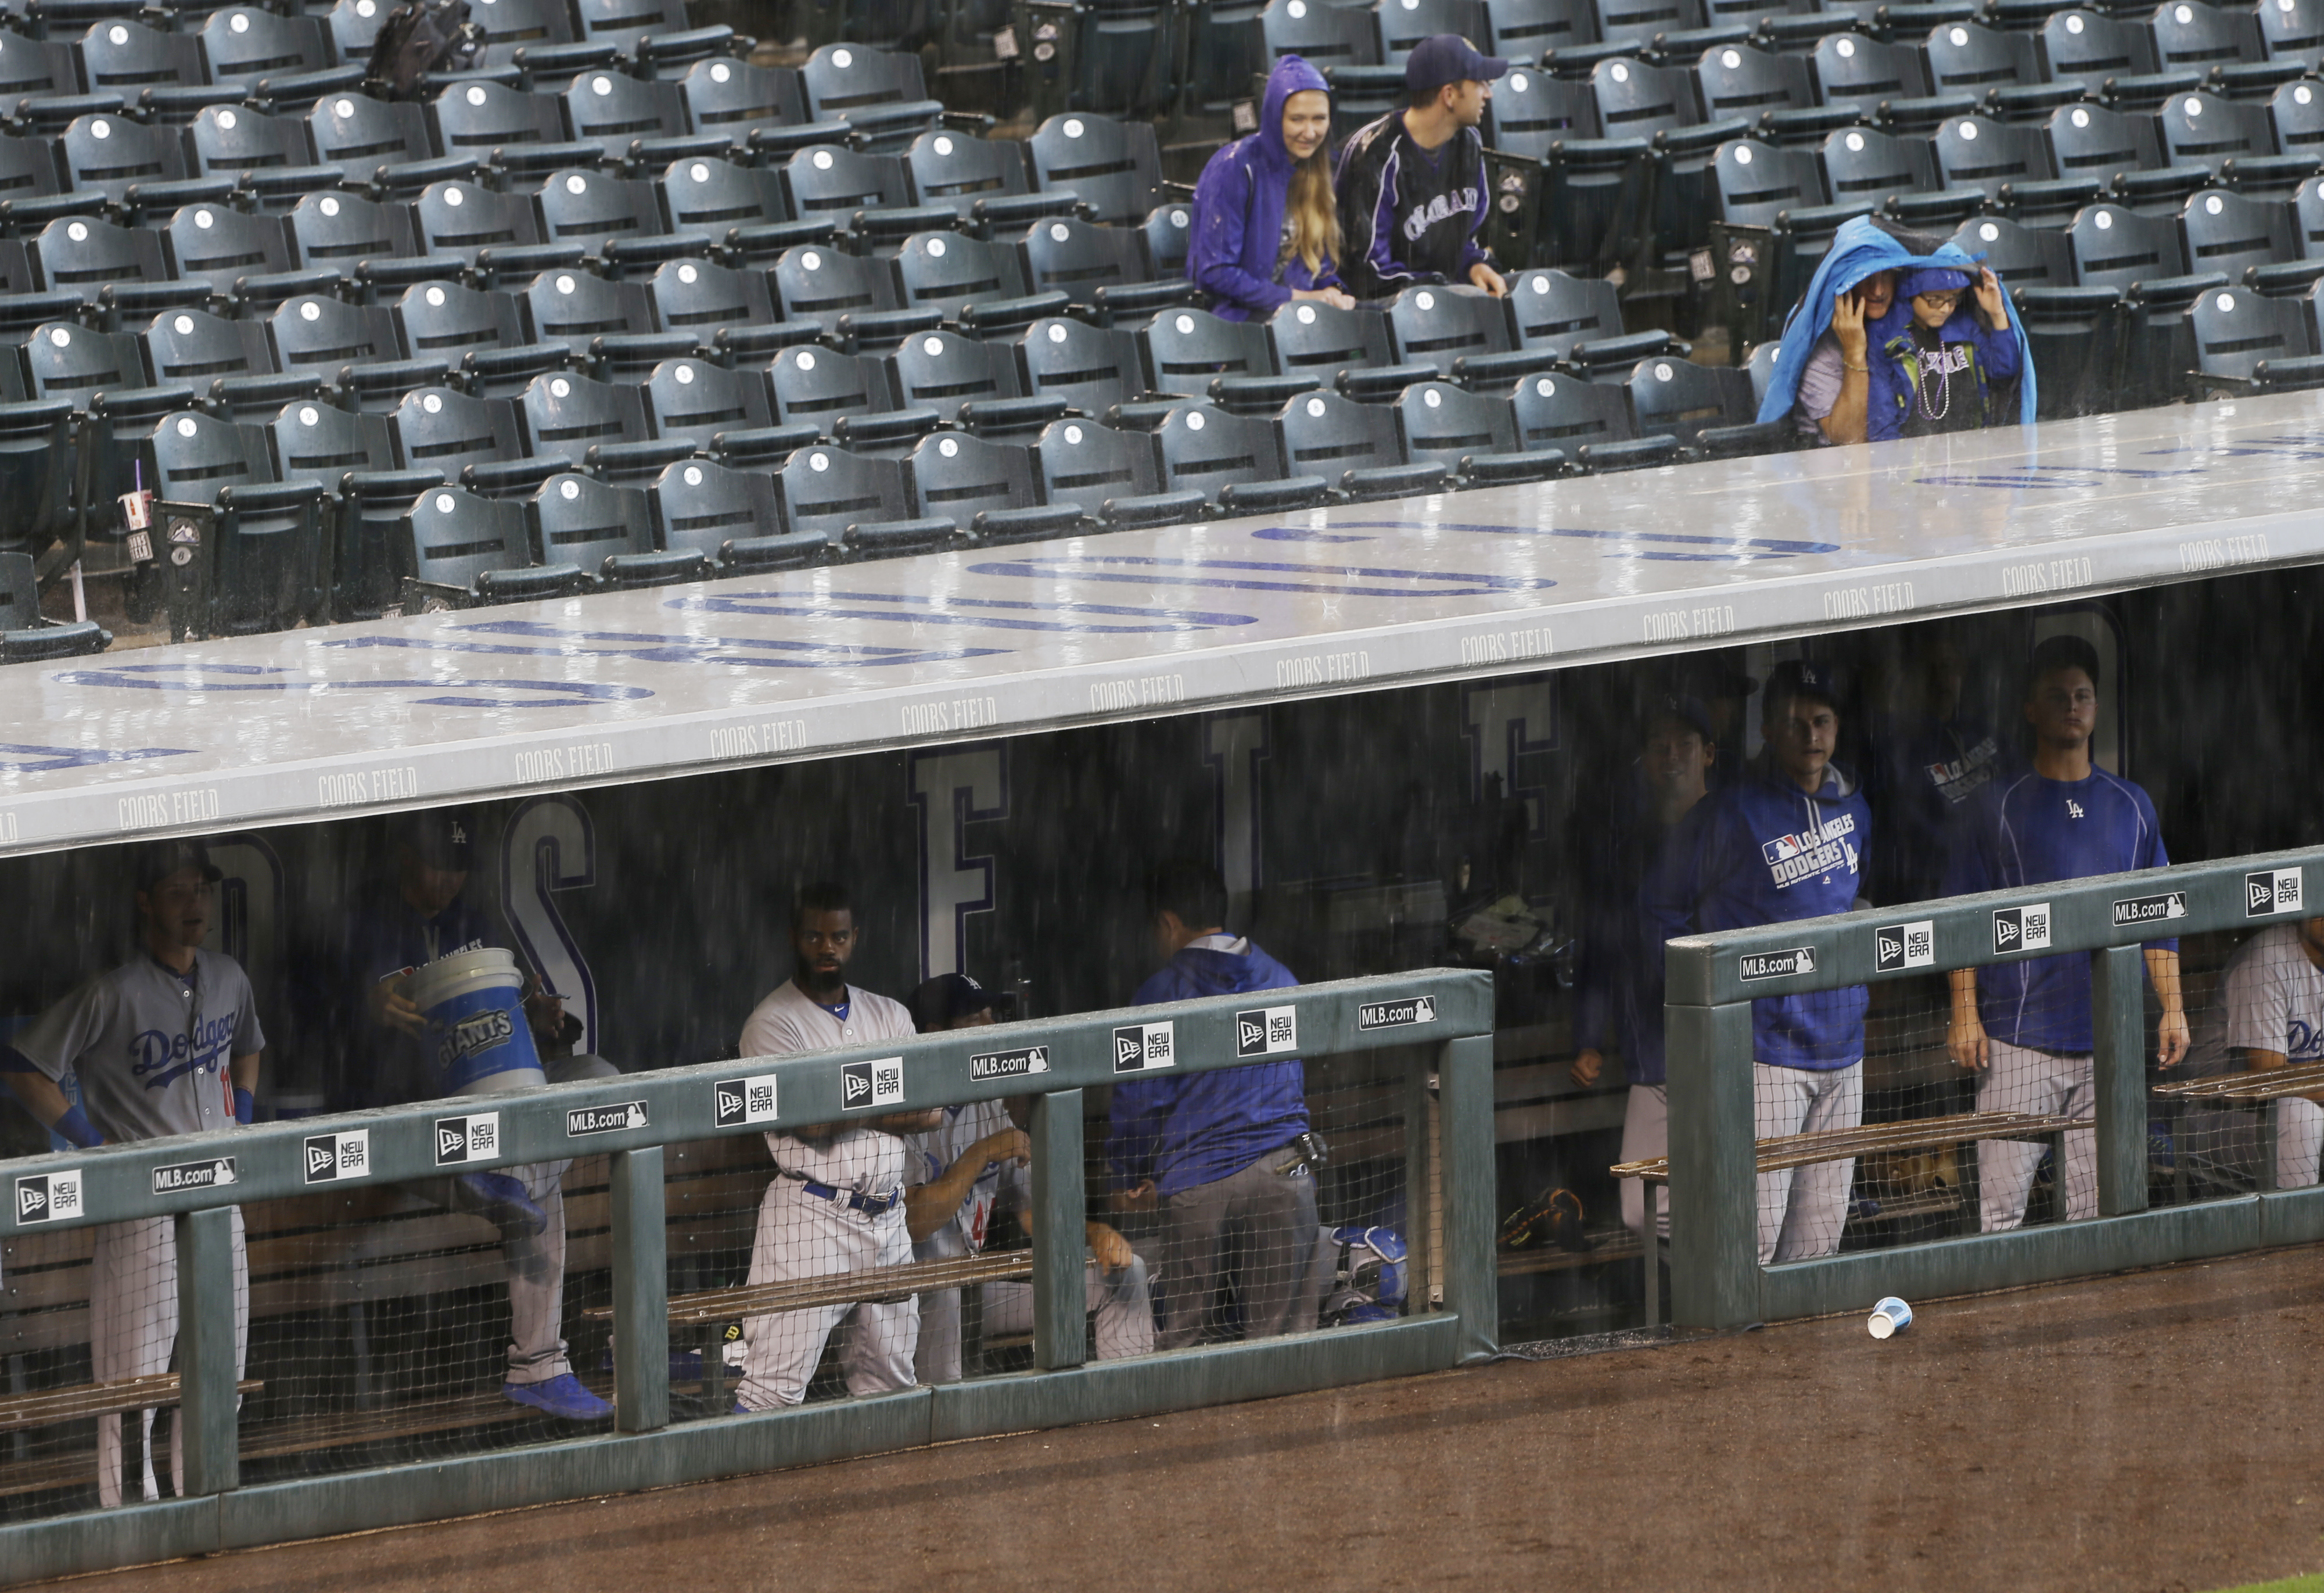 Members of the Los Angeles Dodgers hang out in the dugout during a rain delay before the team's baseball game against the Colorado Rockies on Tuesday, Aug. 30, 2016, in Denver. (AP Photo/Jack Dempsey)